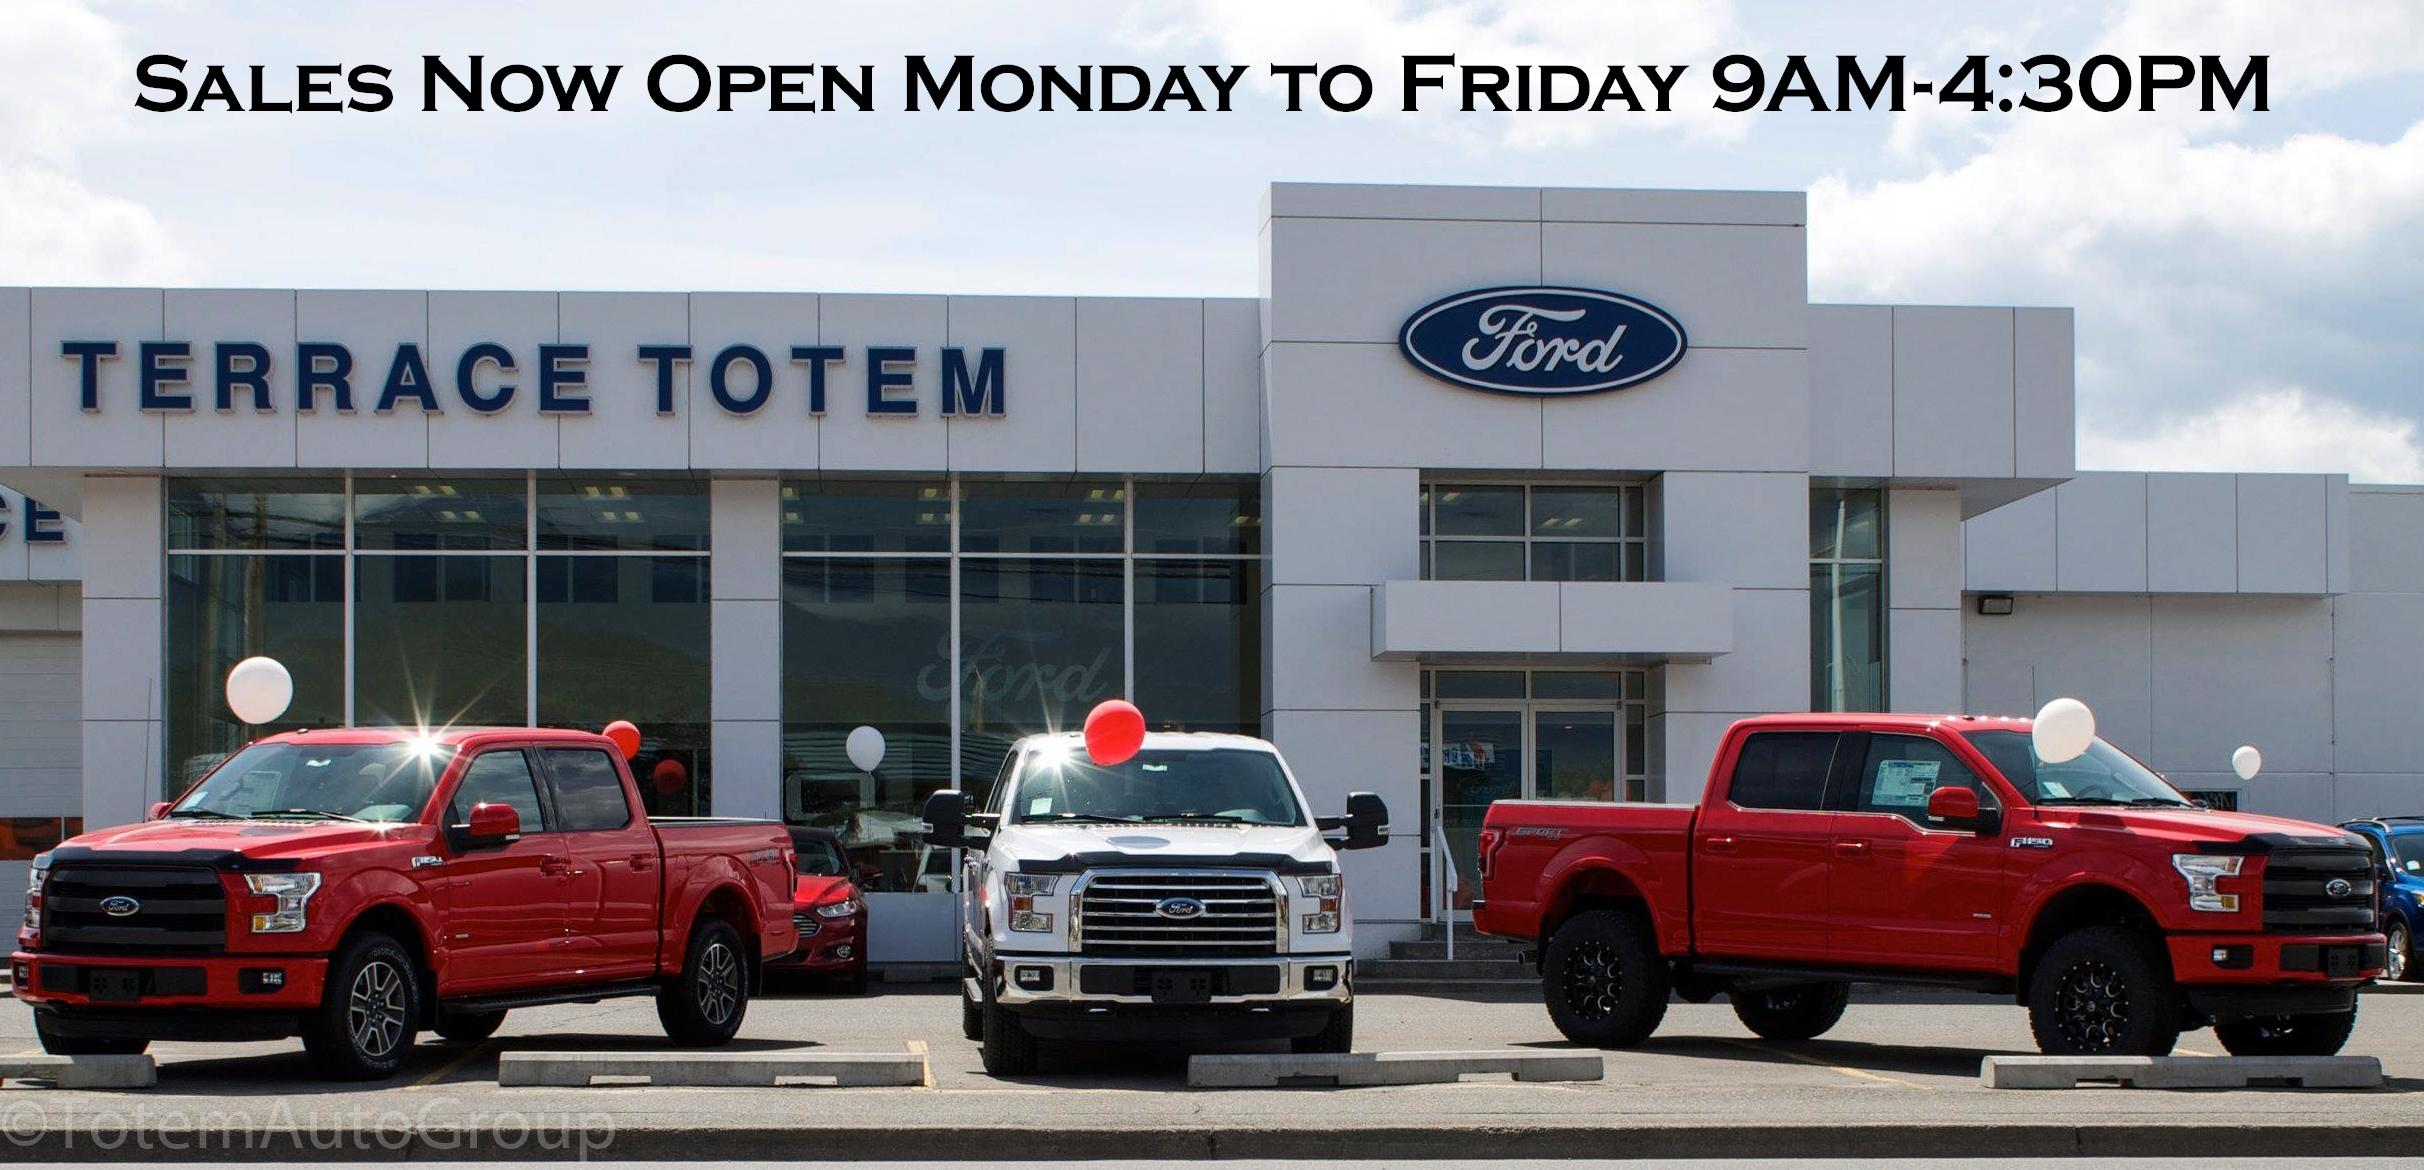 Sales Now Open Mon to Fri 9AM - 4:30PM